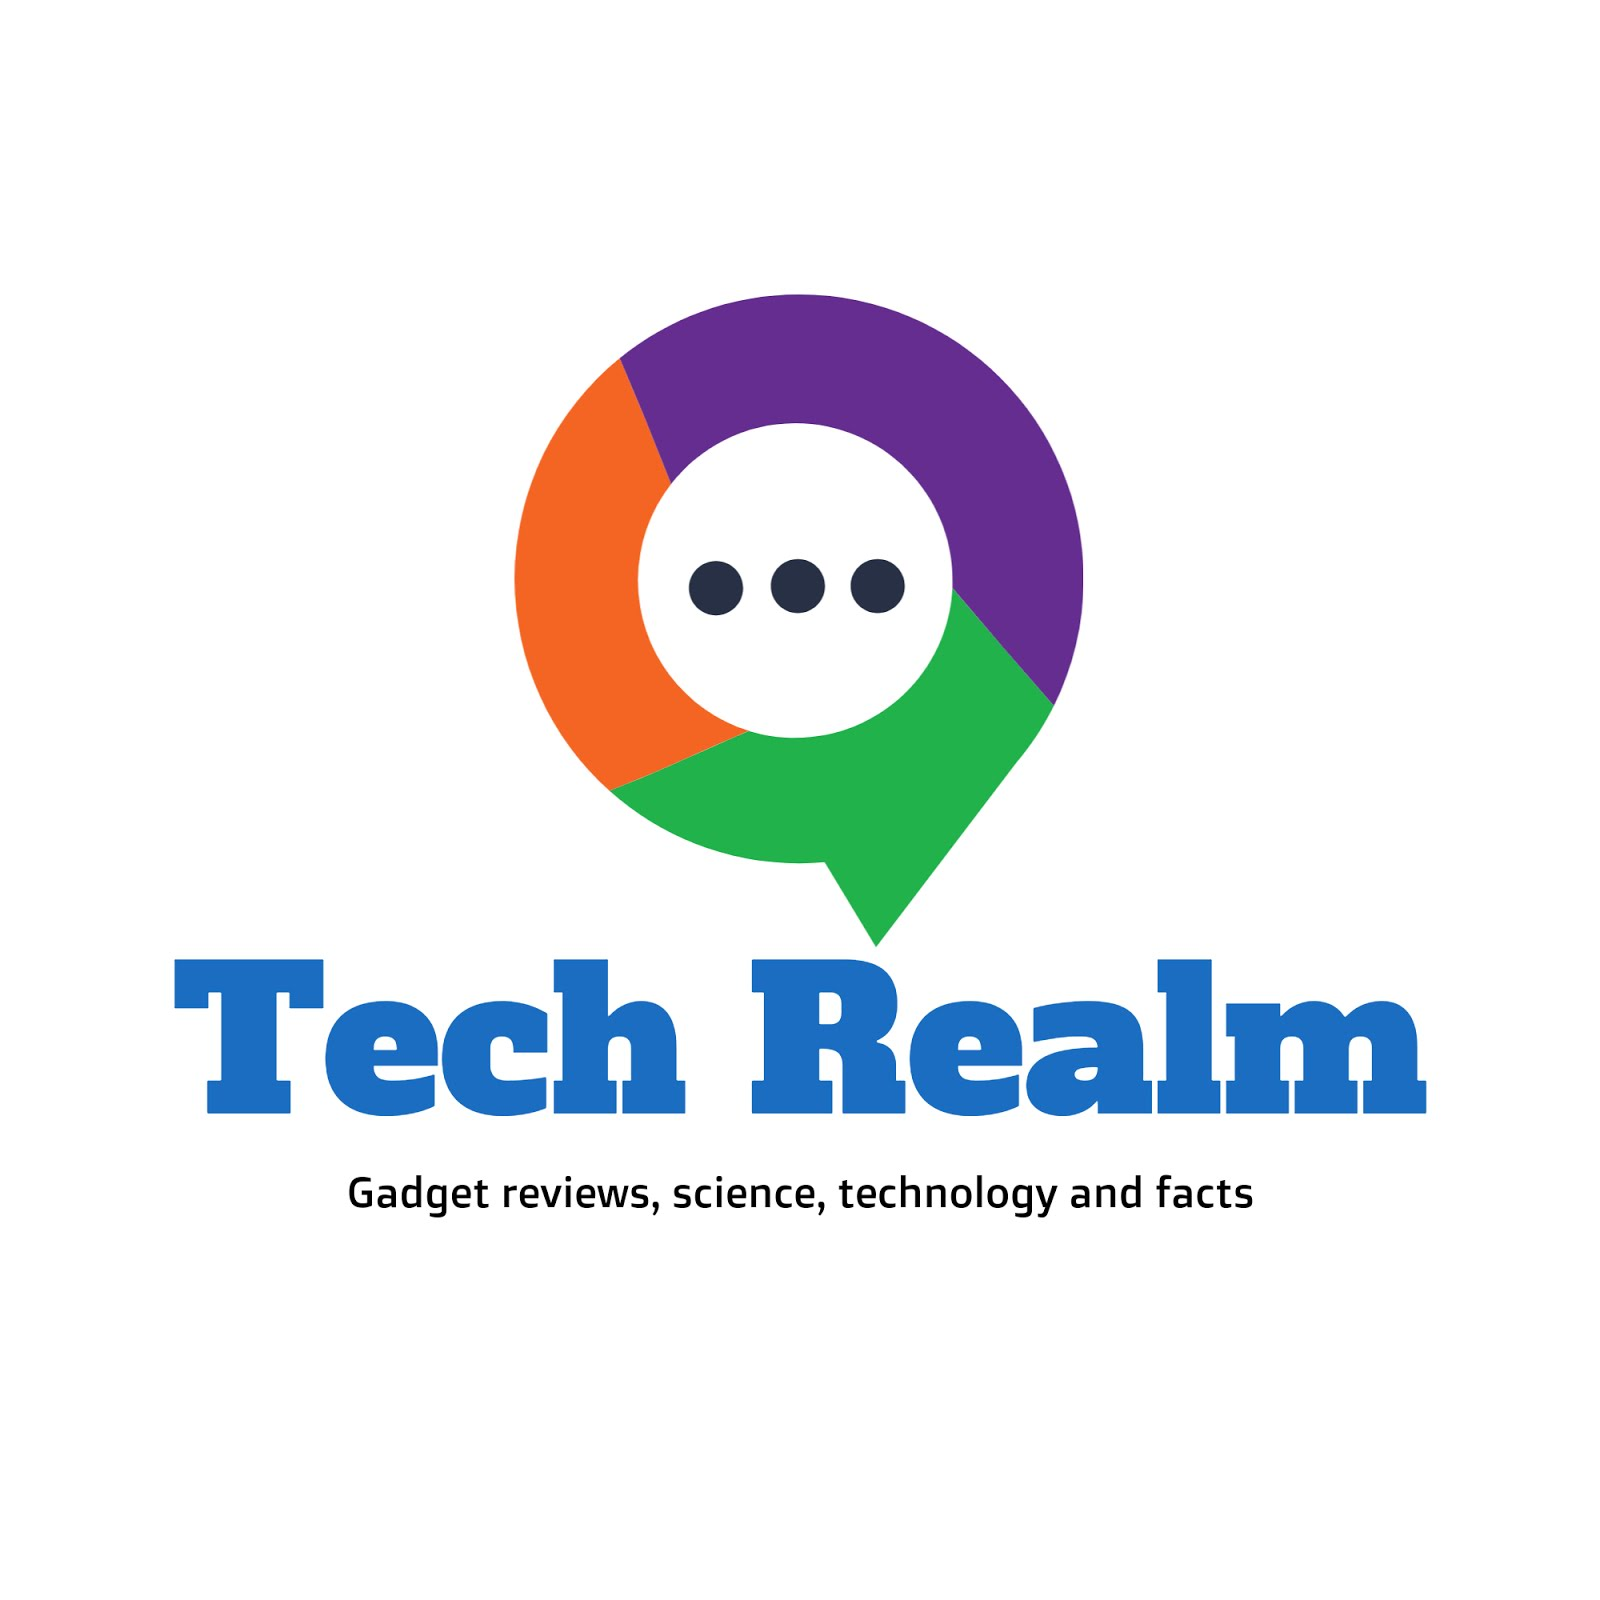 Tech Realm - Gadget reviews, science, technology and facts